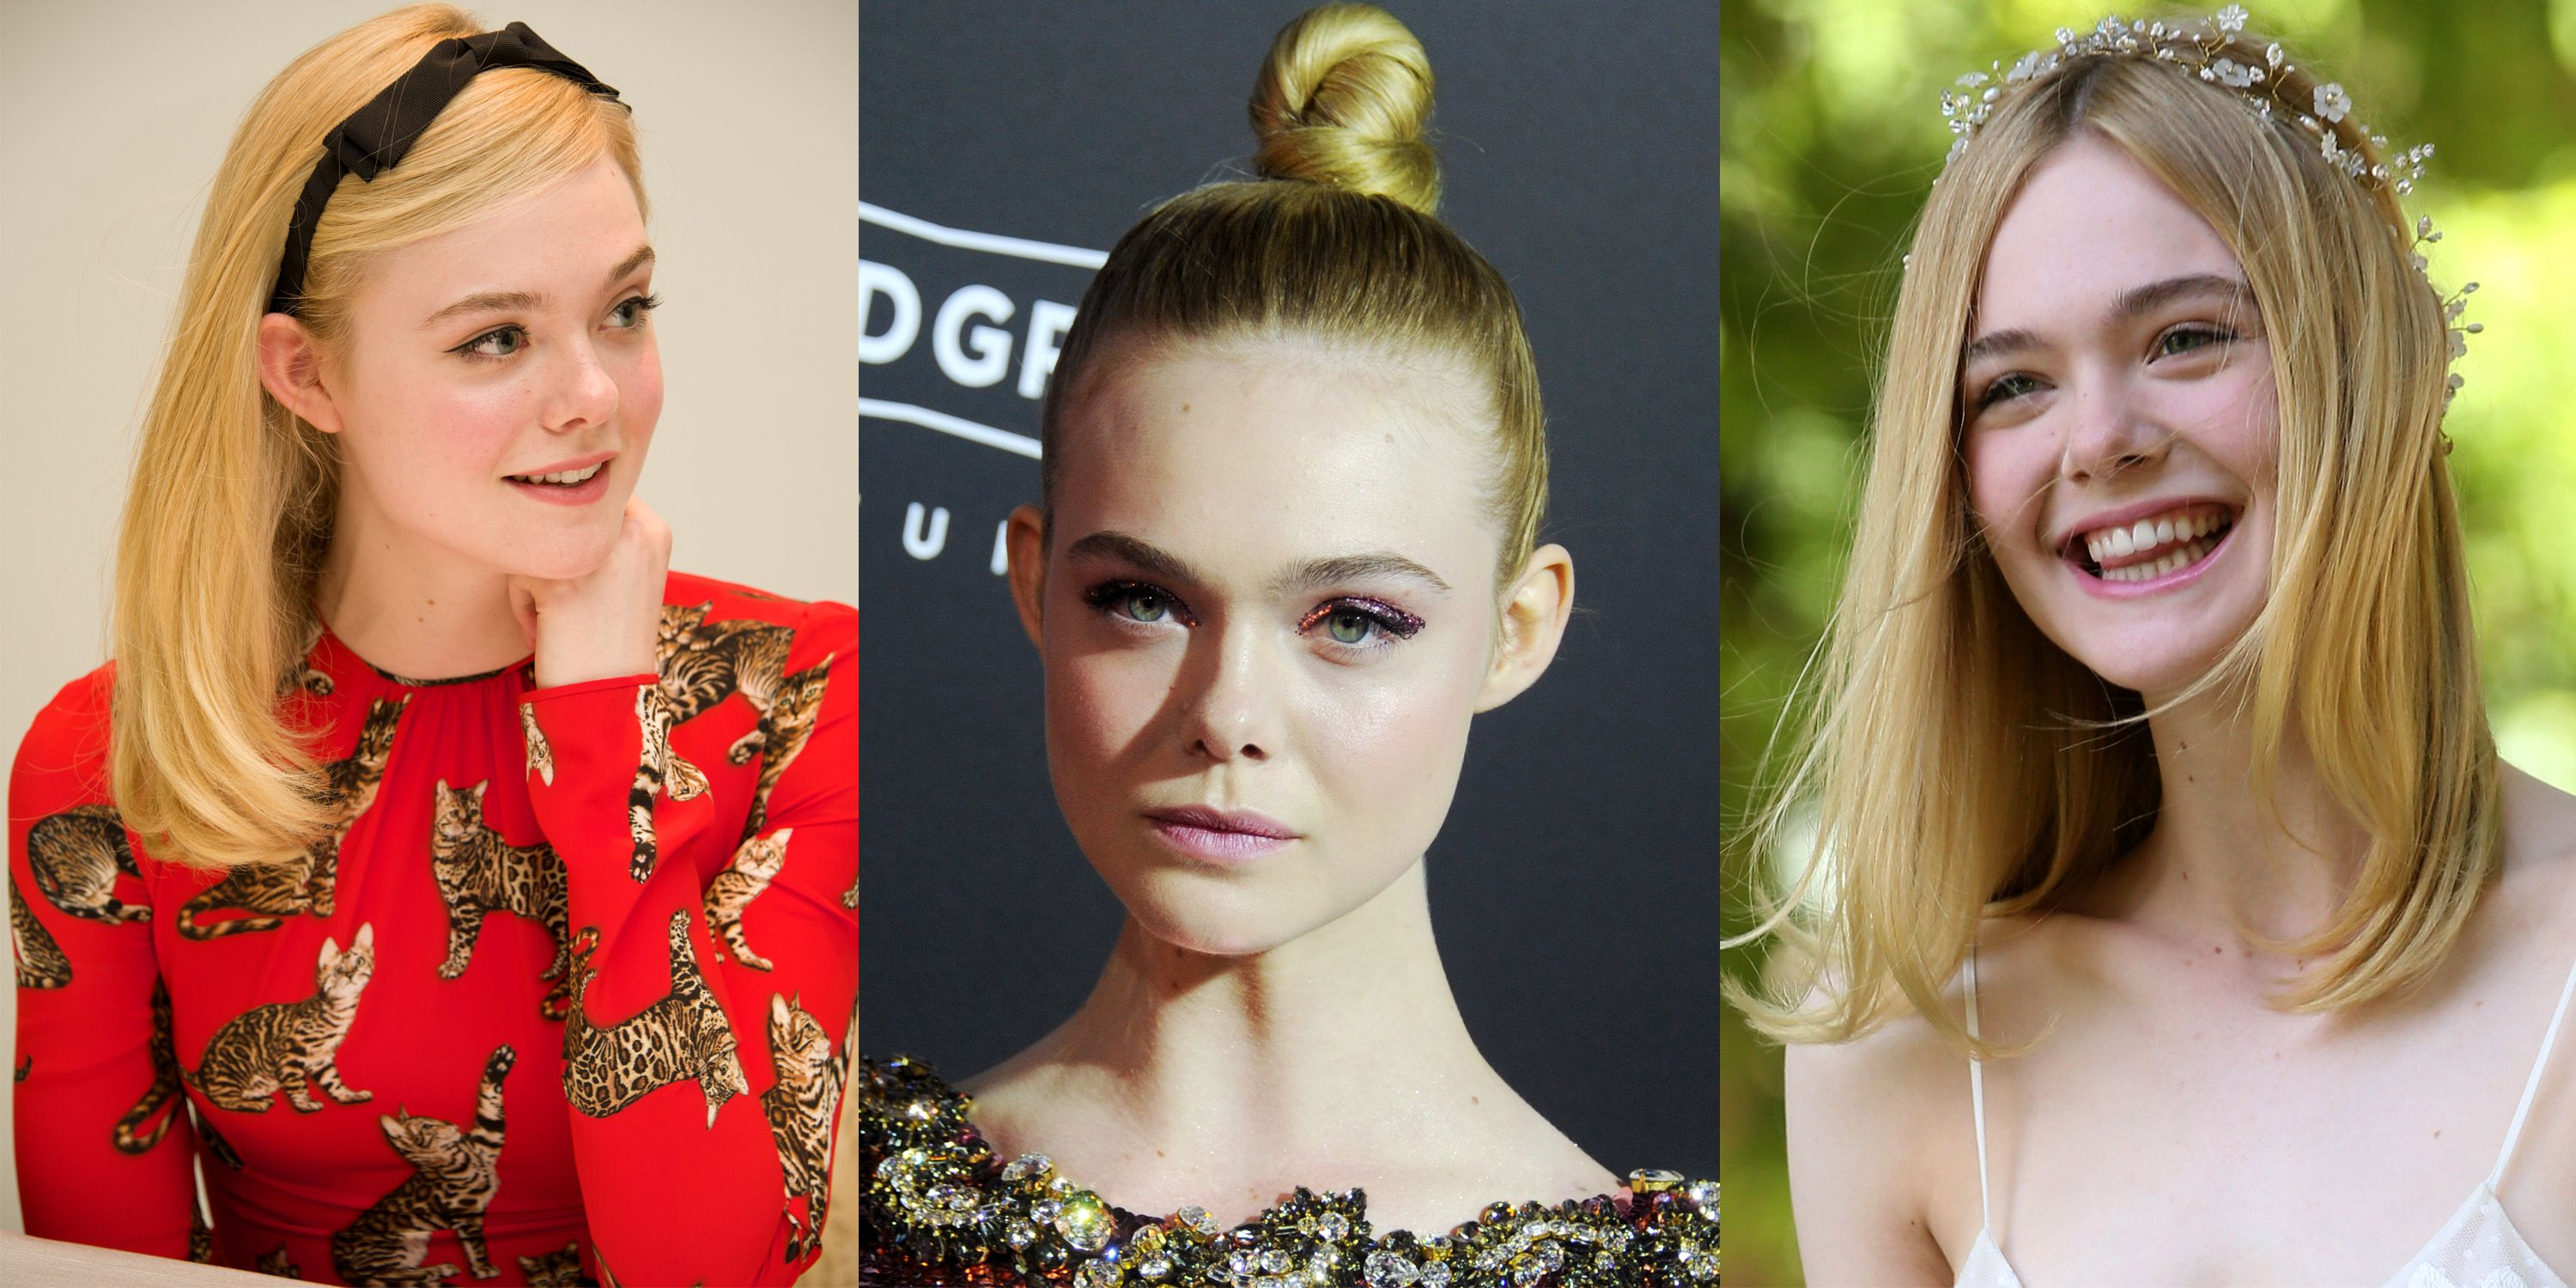 <p>Elle Fanning doesn't allow herself to be boxed in to just one look when it comes to hair and makeup. Sweet and prim?  She nails it. Tough and metallic? She's got that, too. But our favorite Fanning look is when she wholly embraces the fact that she looks like a fairy princess, ethereal headband and all.</p>